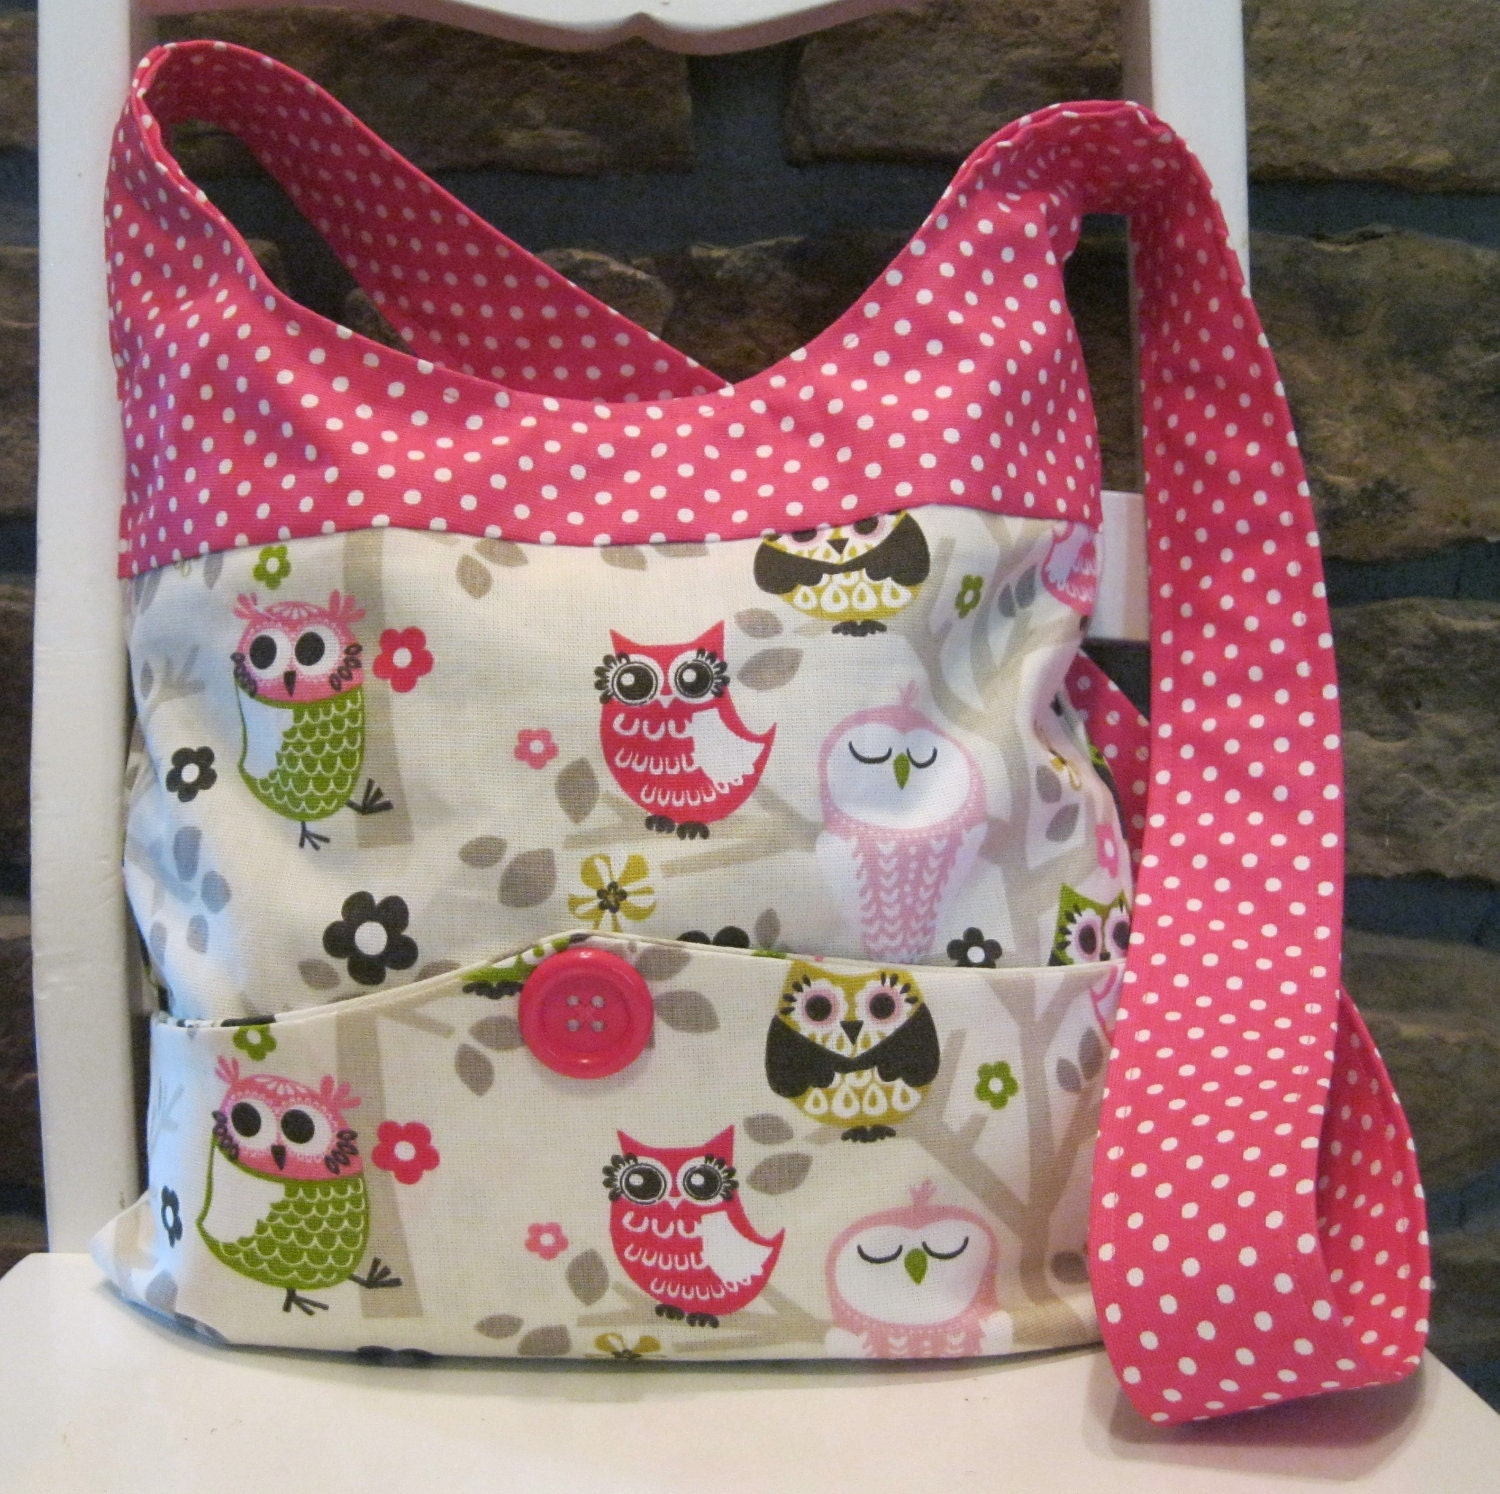 Bags And Purses Patterns : ... Bags Purses - Shoulder bag - Owl and Pink Polka Dot Pattern Fabric on